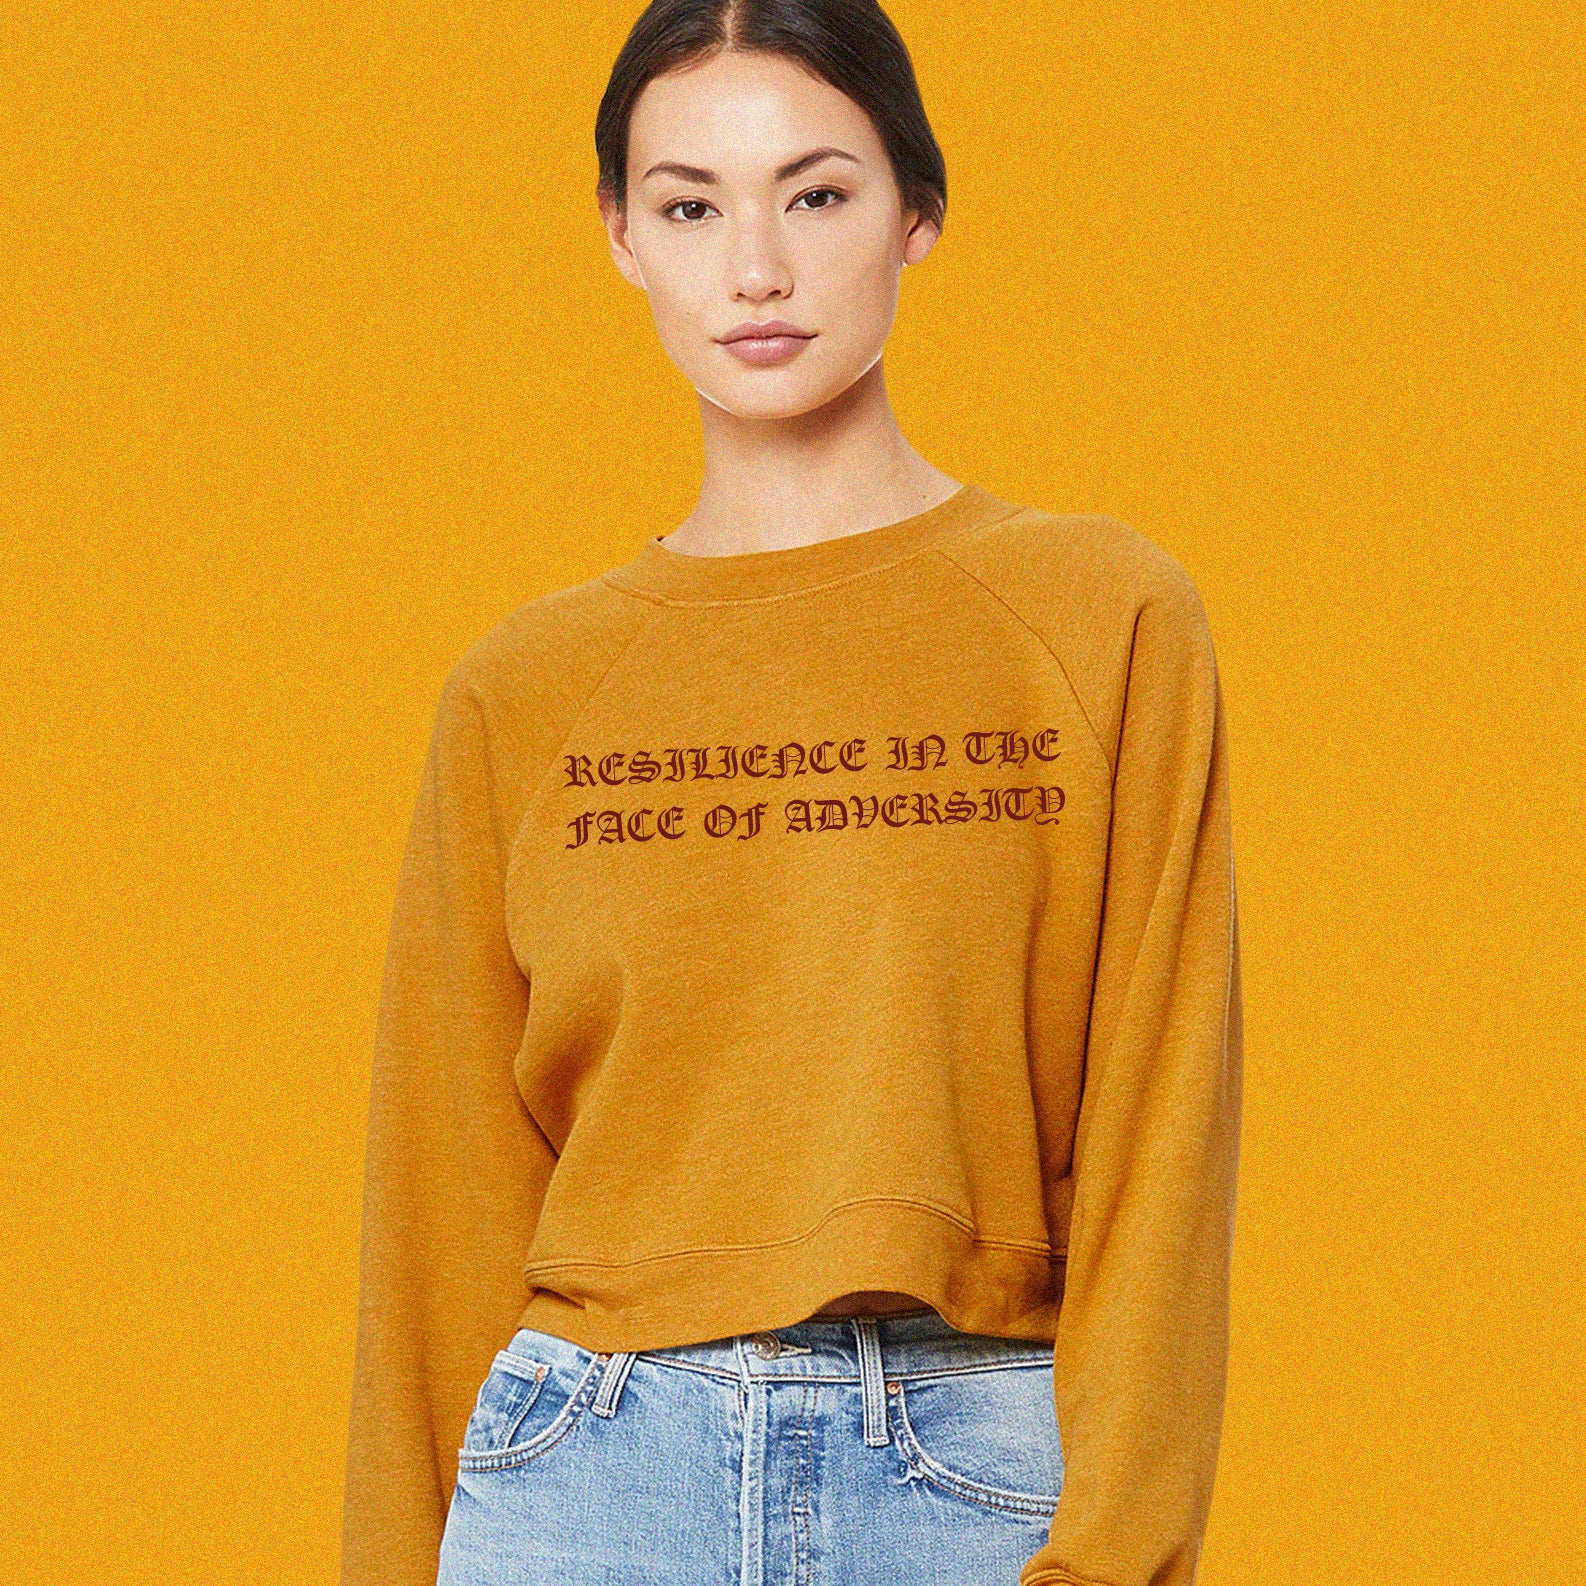 Resilience in the face of Adversity Sweatshirt